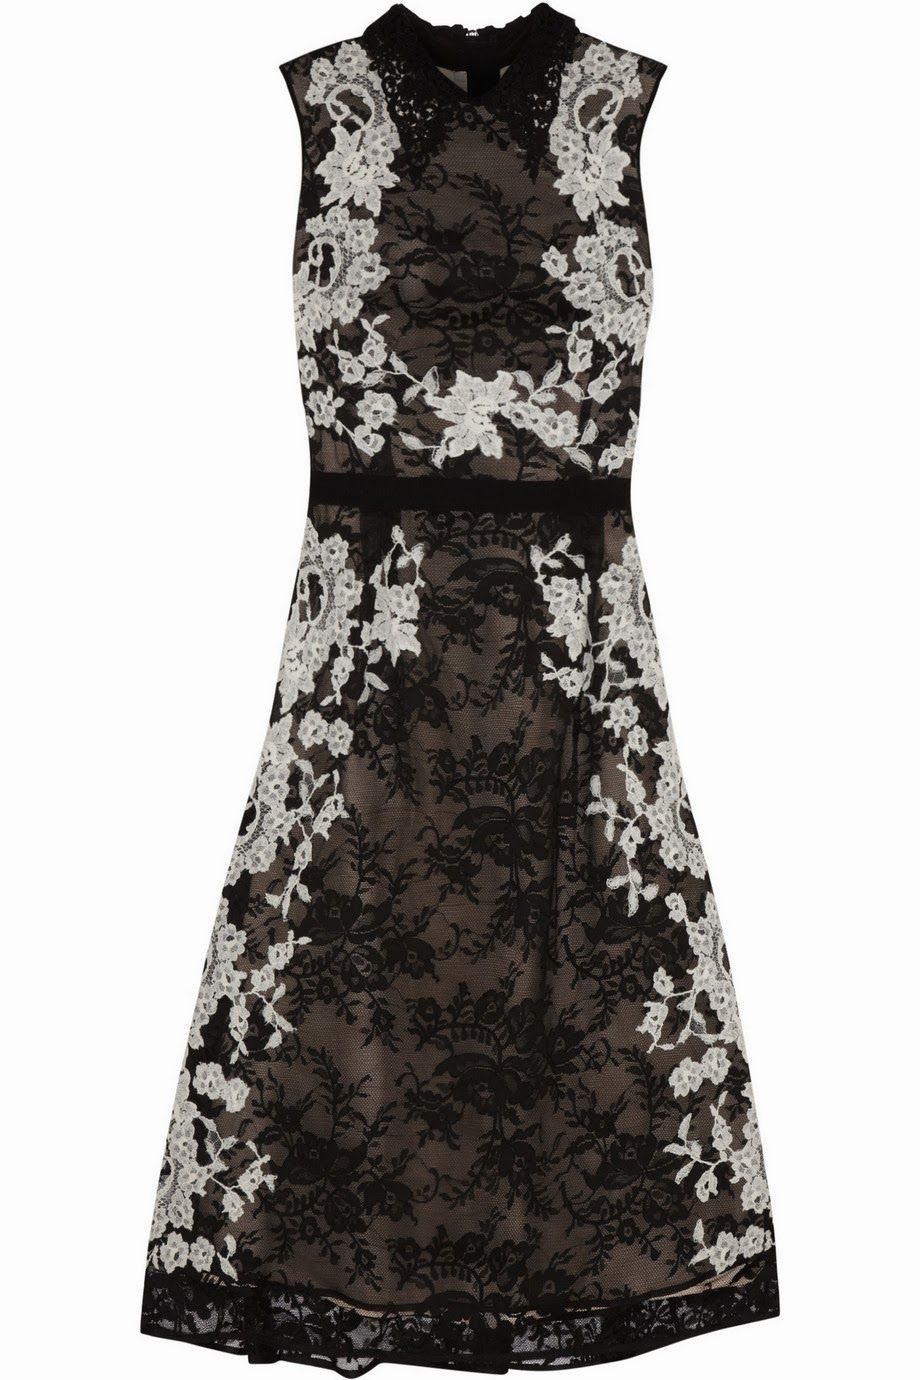 Togetherthetwo erdem kali lace collar dress art in fashion